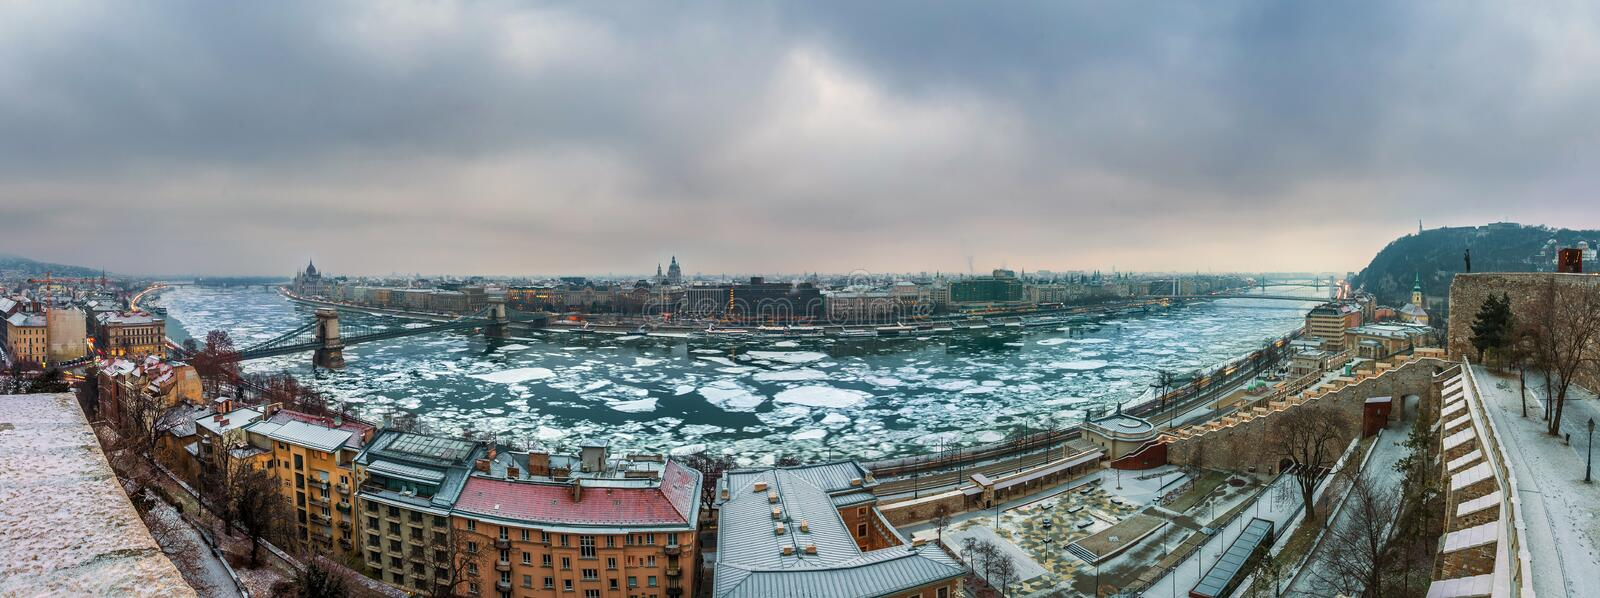 Budapest, Hungary - Panoramic skyline view of Budapest with the icy River Danube and Chain Bridge and other landmarks. Taken from the Buda Castle Royal Palace stock photos